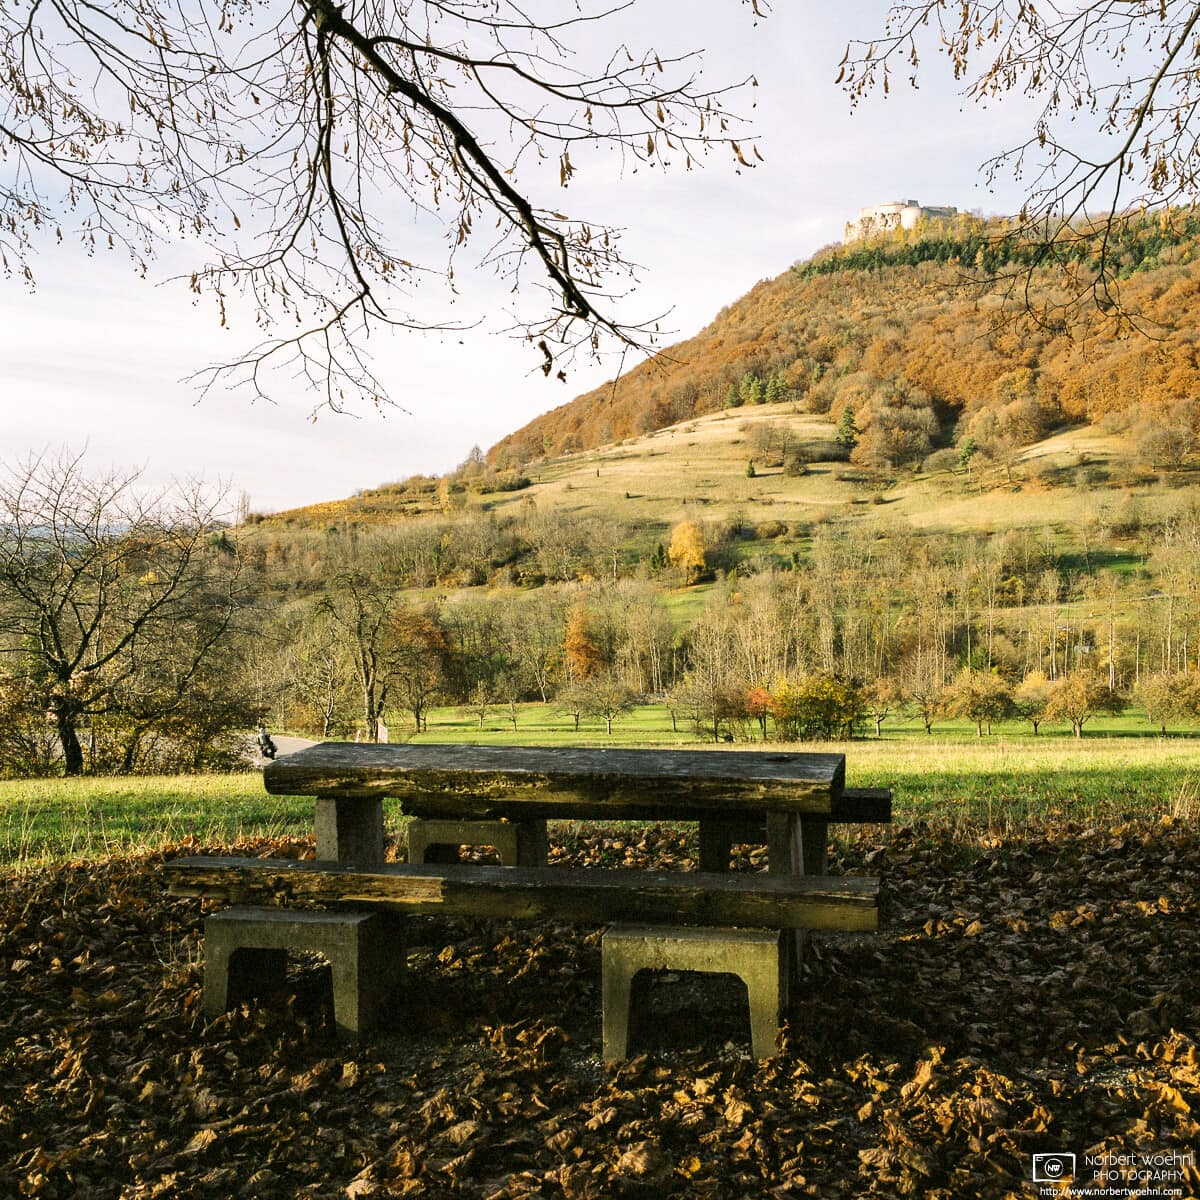 This bench at a picnic area offers a pleasant view of Hohenneuffen Castle in southwestern Germany.